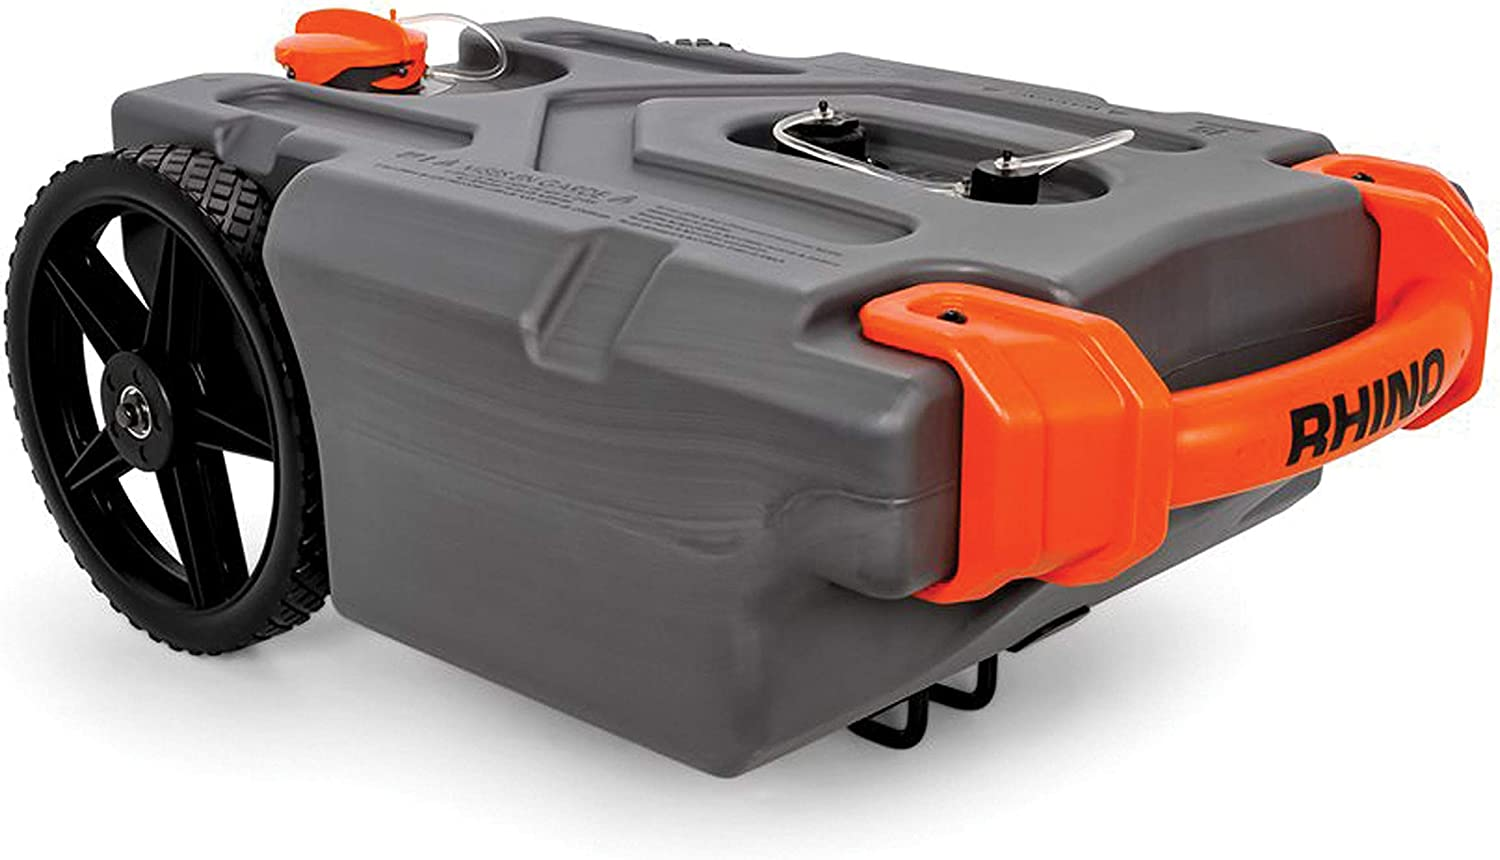 Amazon Com Camco 39000 Rhino Heavy Duty 15 Gallon Portable Rv Waste Holding Tank With Hose And Accessories Durable Leak Free And Odorless Rv Tote Tank Automotive